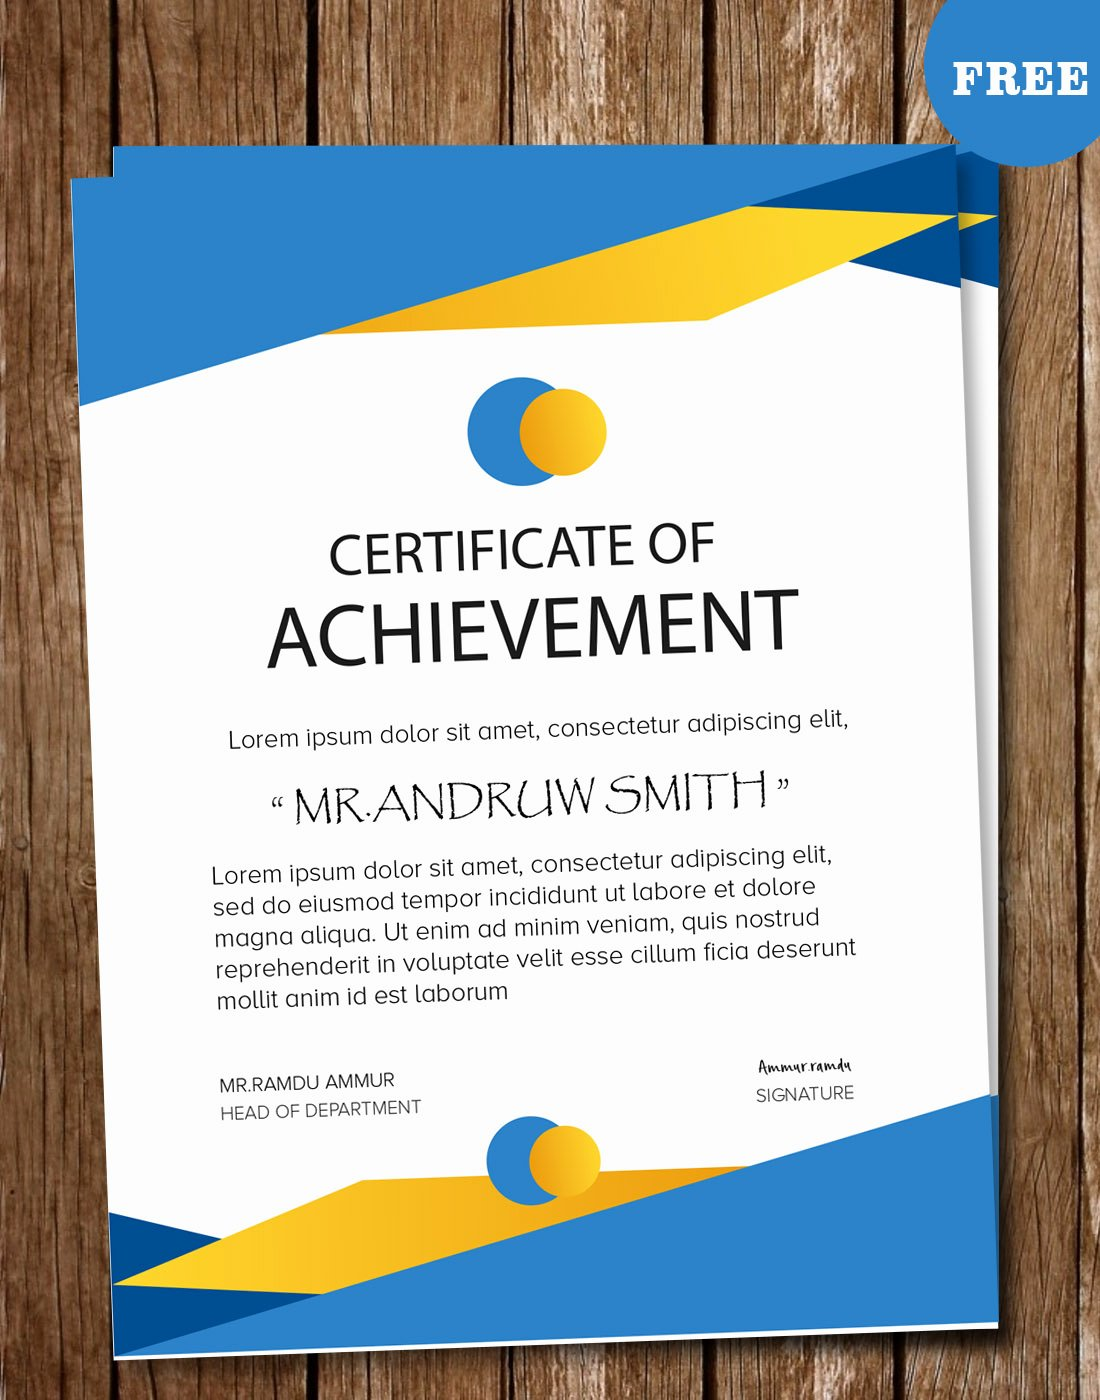 Free Photoshop Certificate Template Lovely Shop Certificate Template Psd Free Verpacken